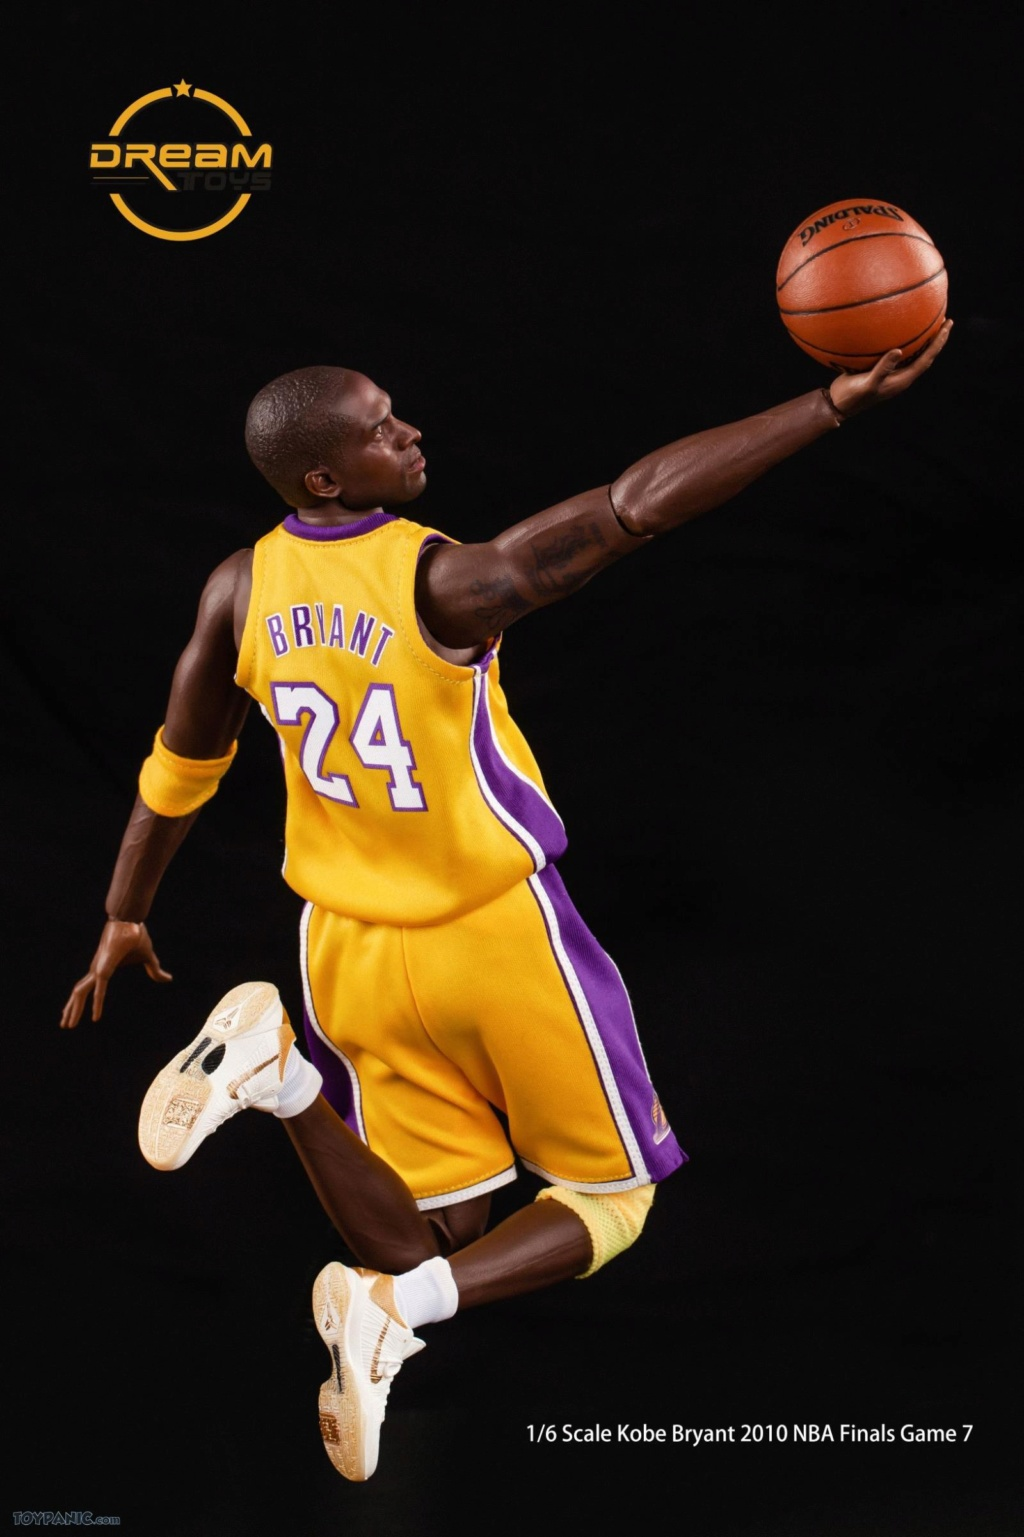 athlete - NEW PRODUCT: DreamToys: NBA Finals Jordan, Bryant, & James 1/6 scale action figures 11420231